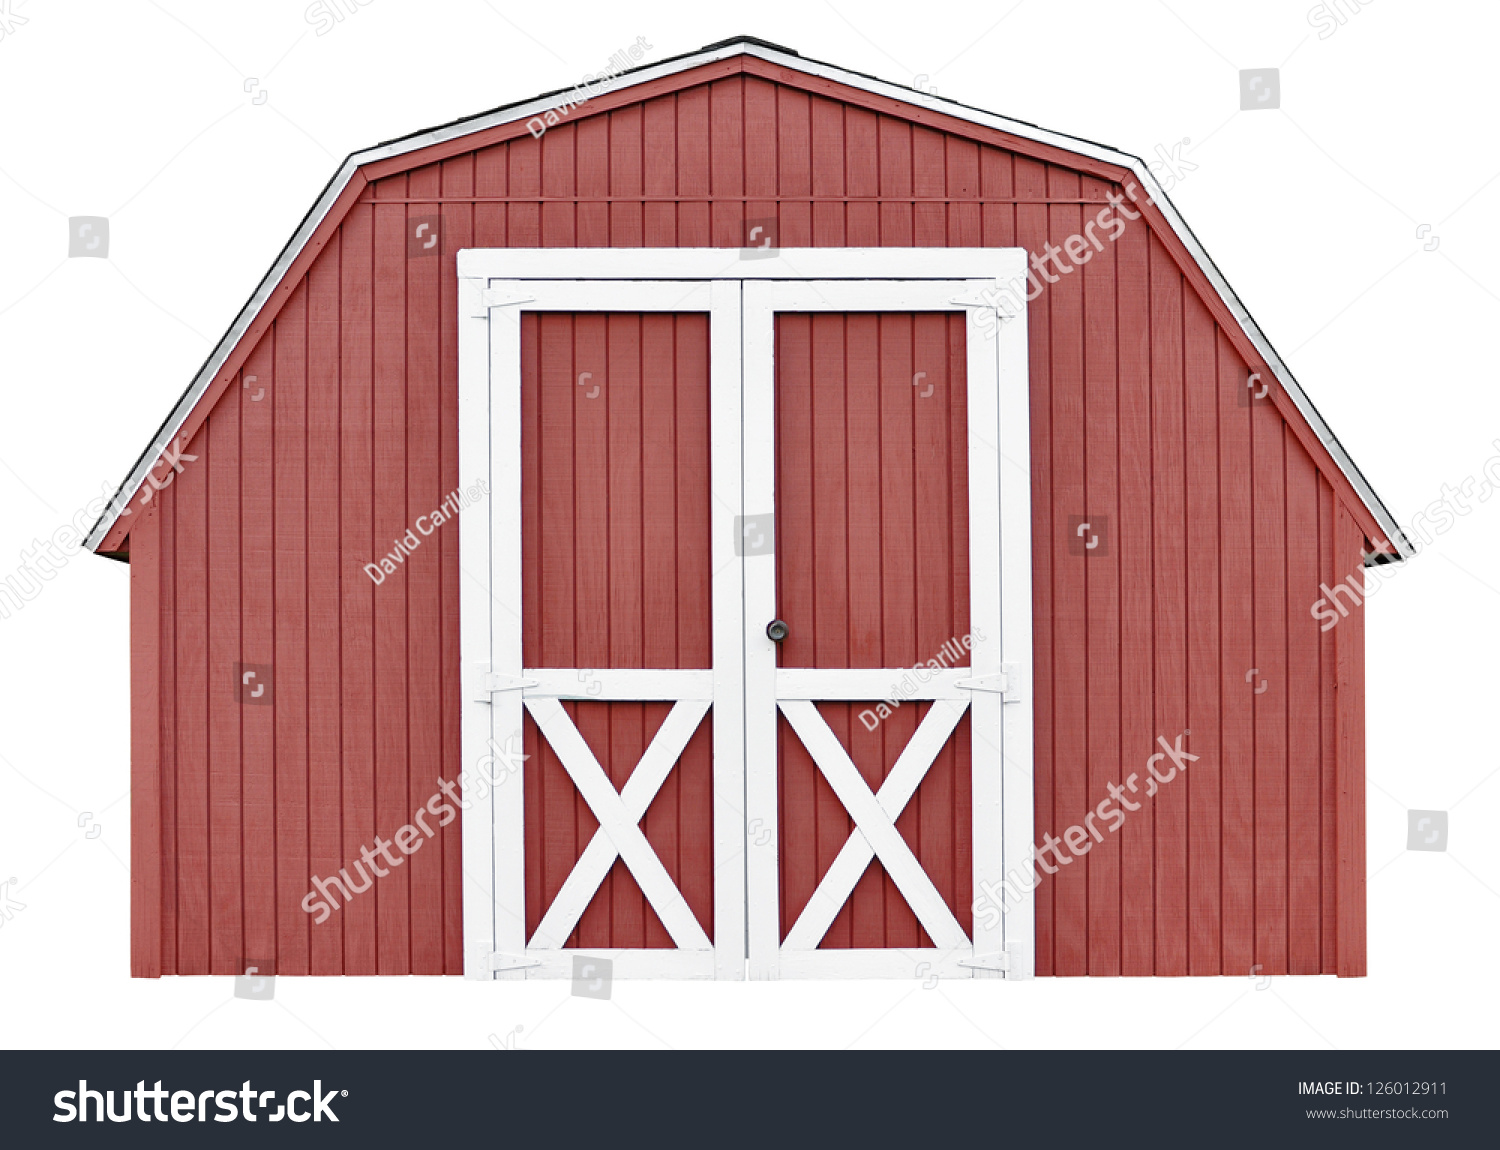 barn style utility tool shed garden stock photo 126012911 barn style utility tool shed for garden and farm equipment isolated on white background